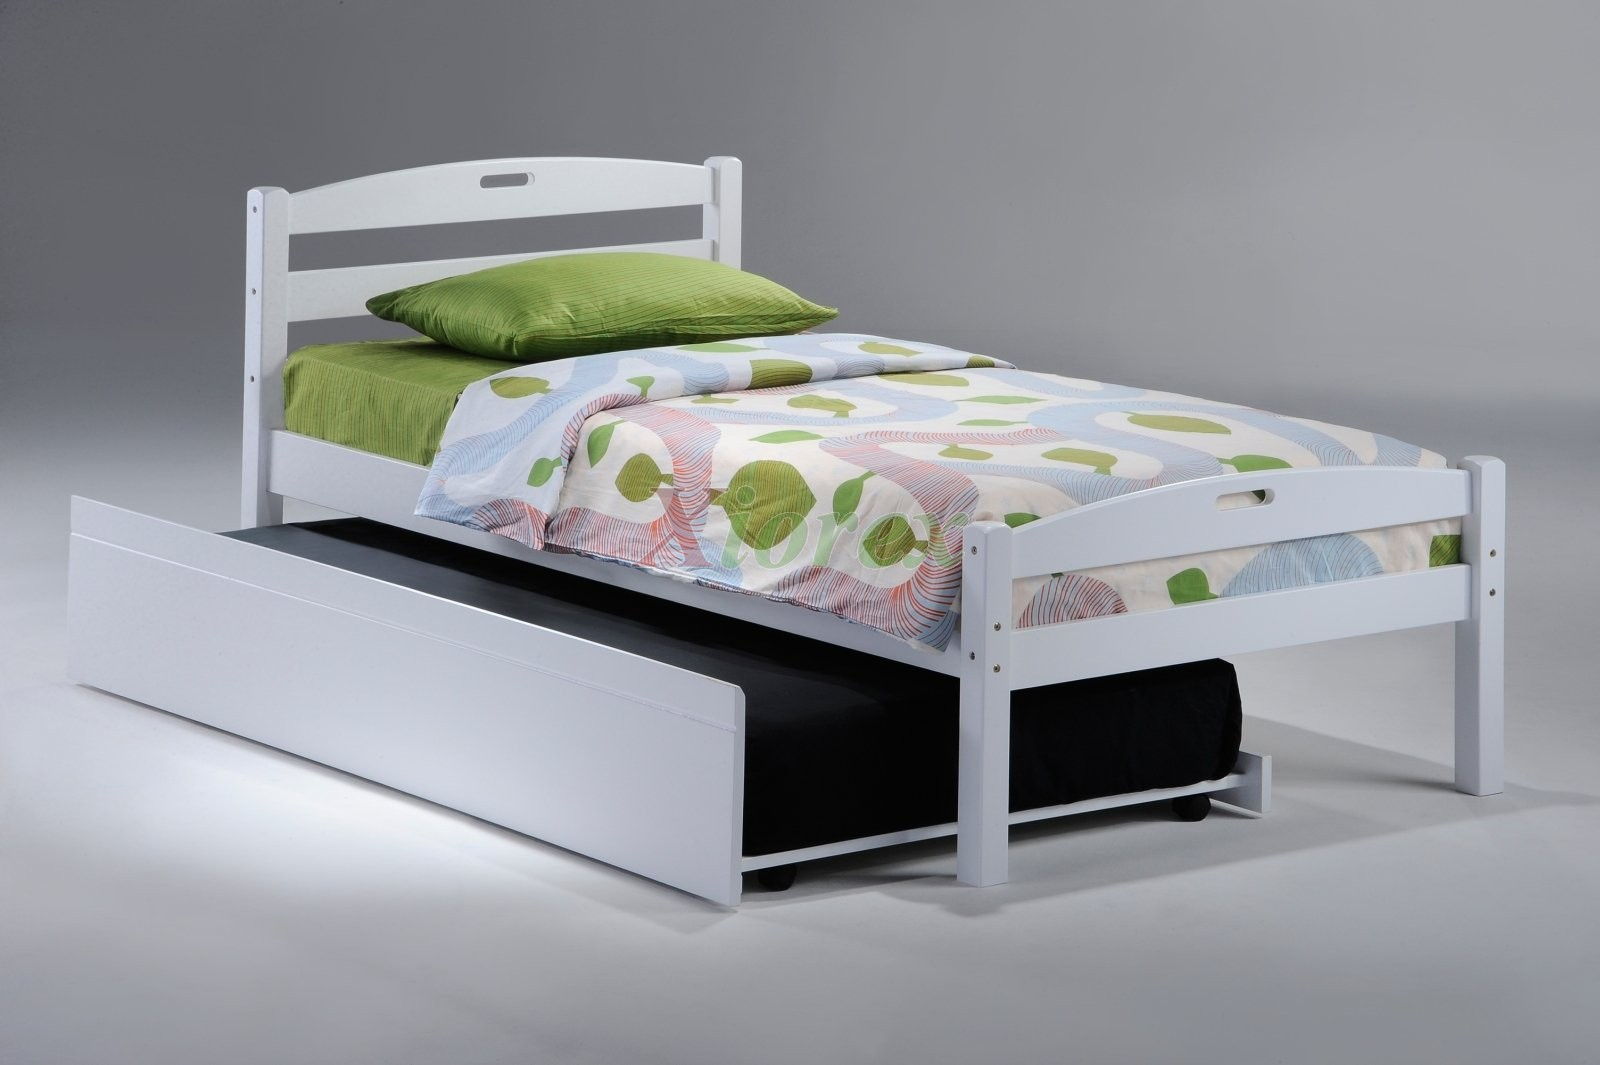 Kids BedsXiorexBuy Kids Beds and Bedroom Sets Online at Xiorex